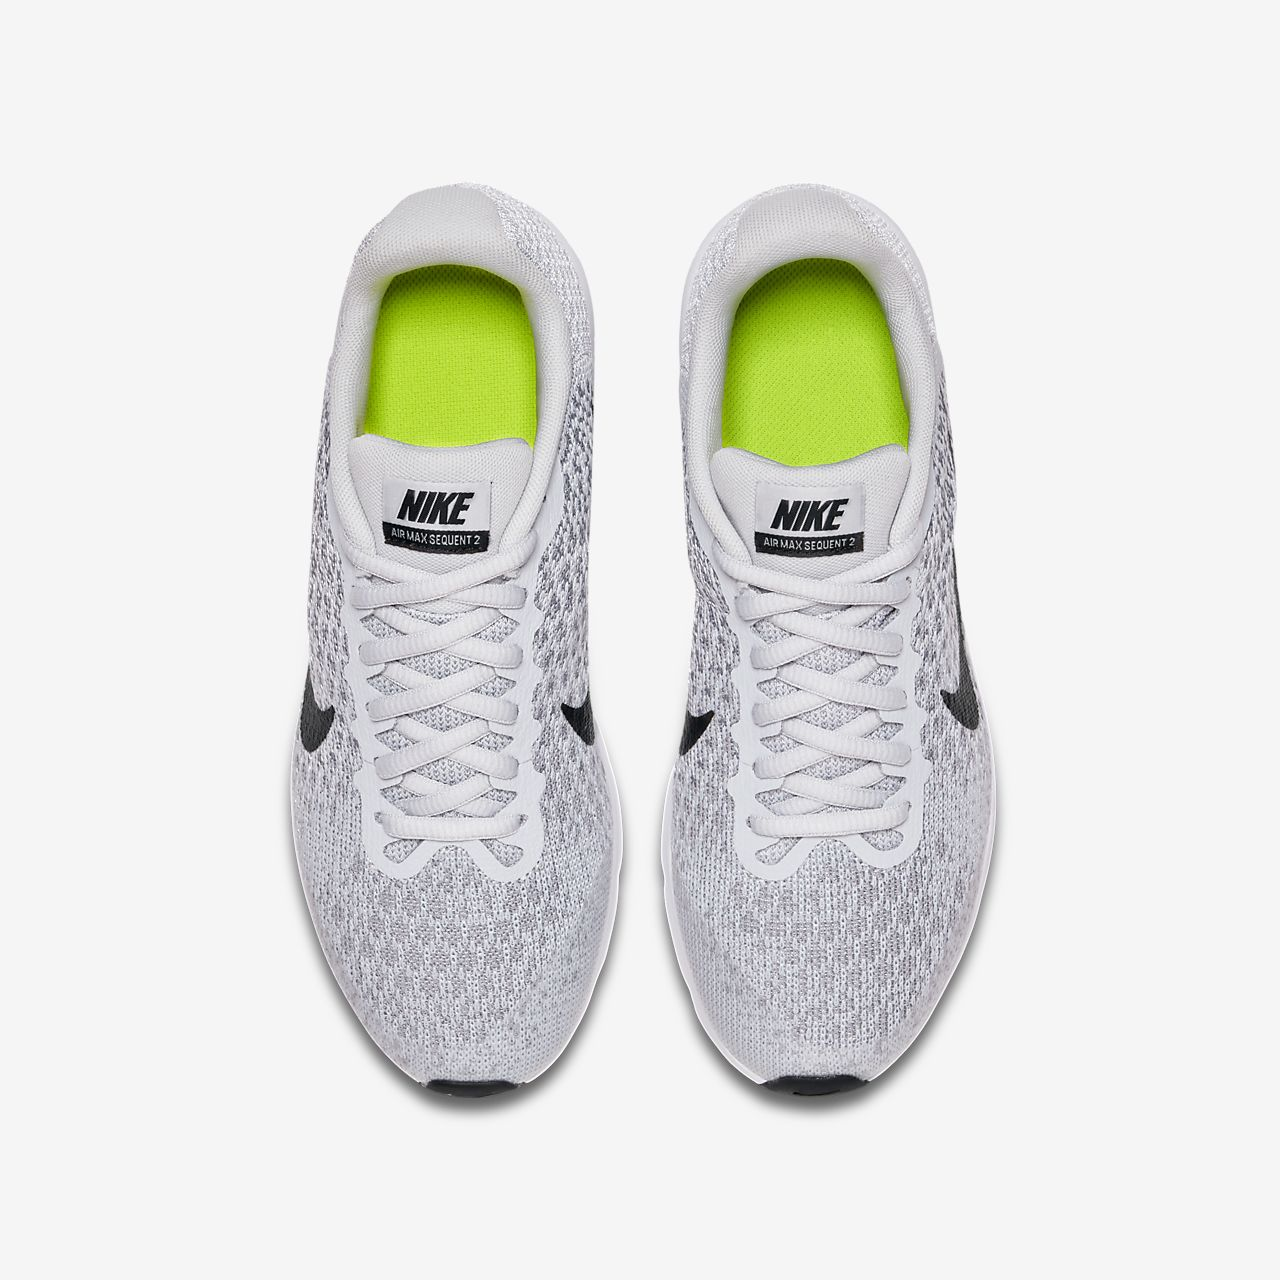 CHAUSSURES BASSES running enfant NIKE AIR MAX SEQUENT 2